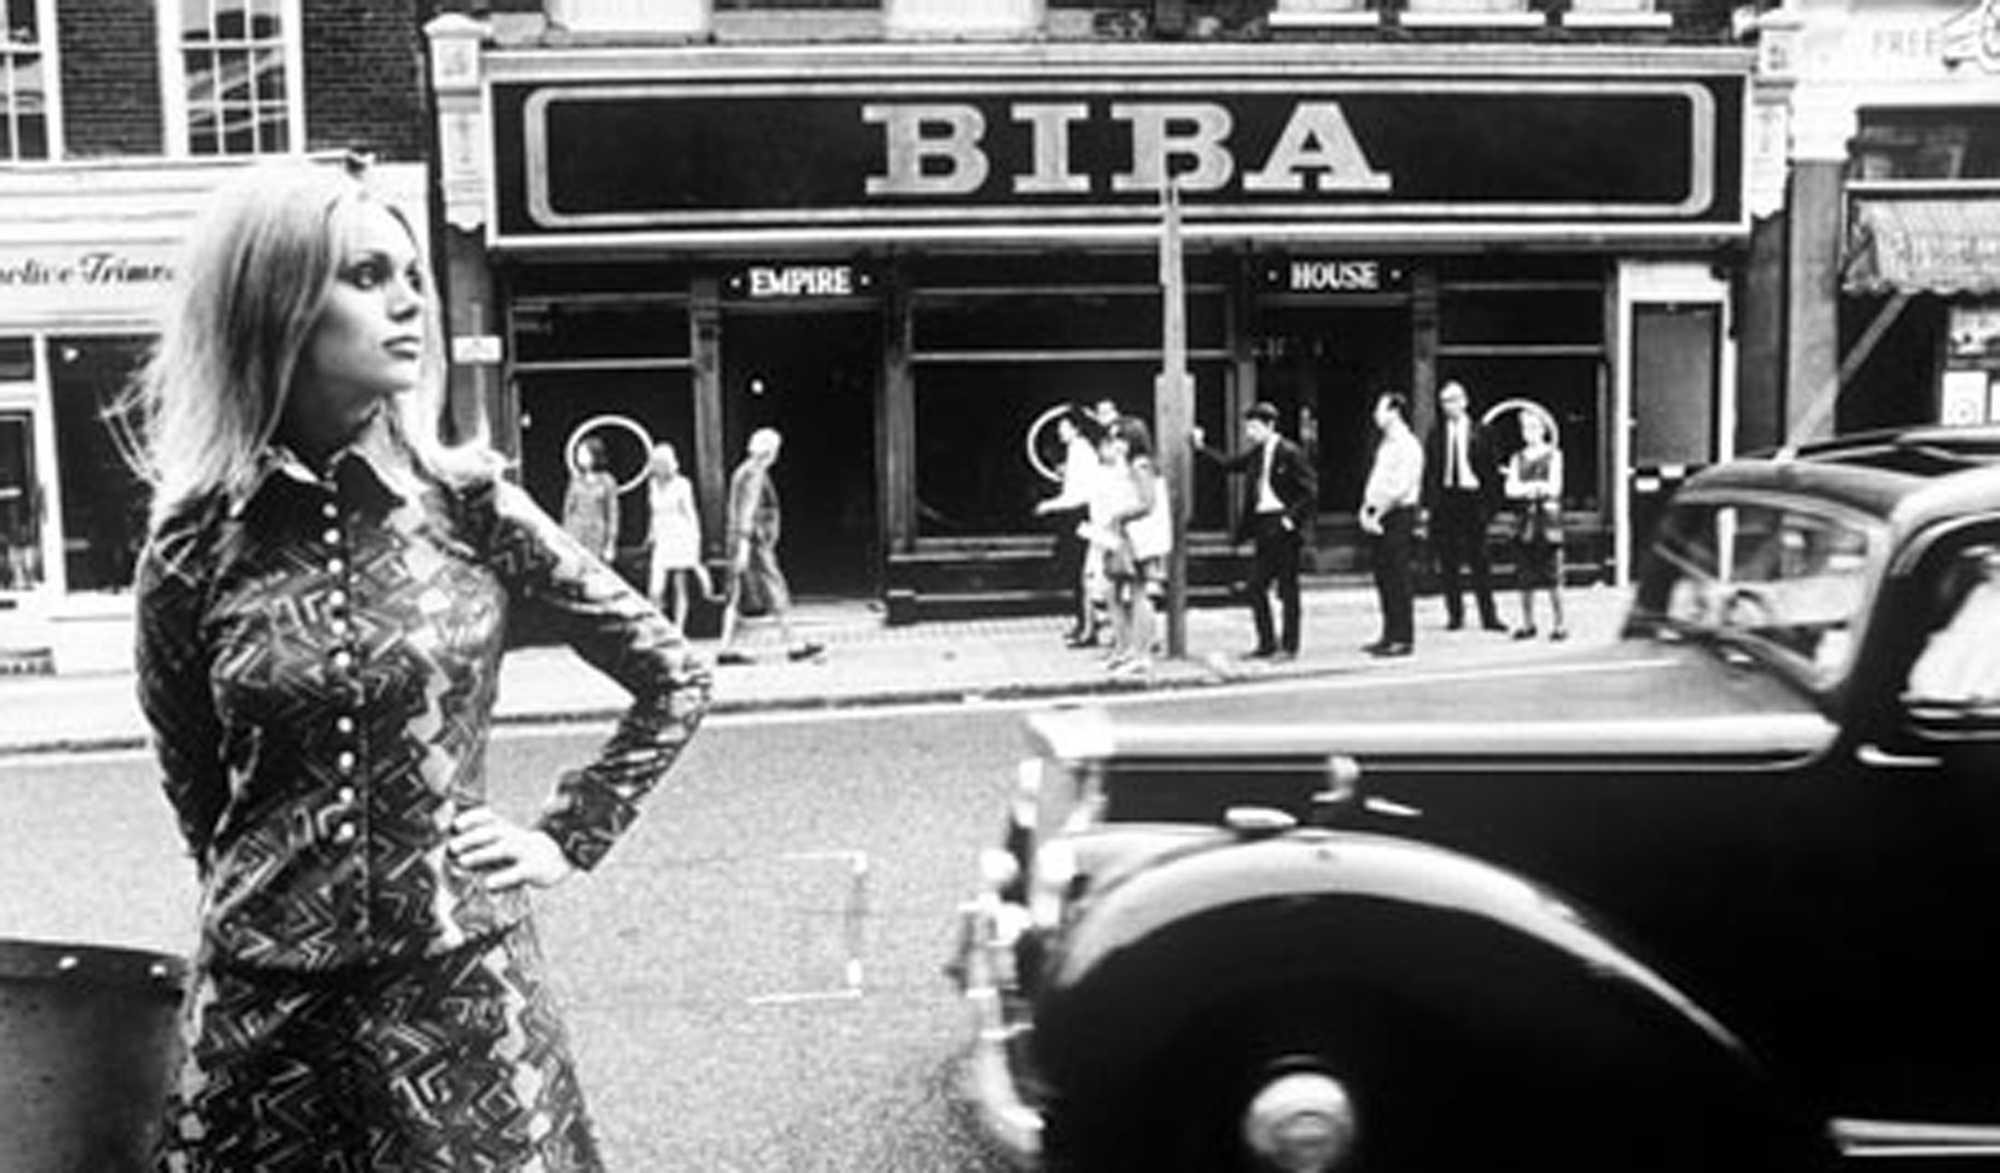 biba boutique, the . mecca of 60's cool